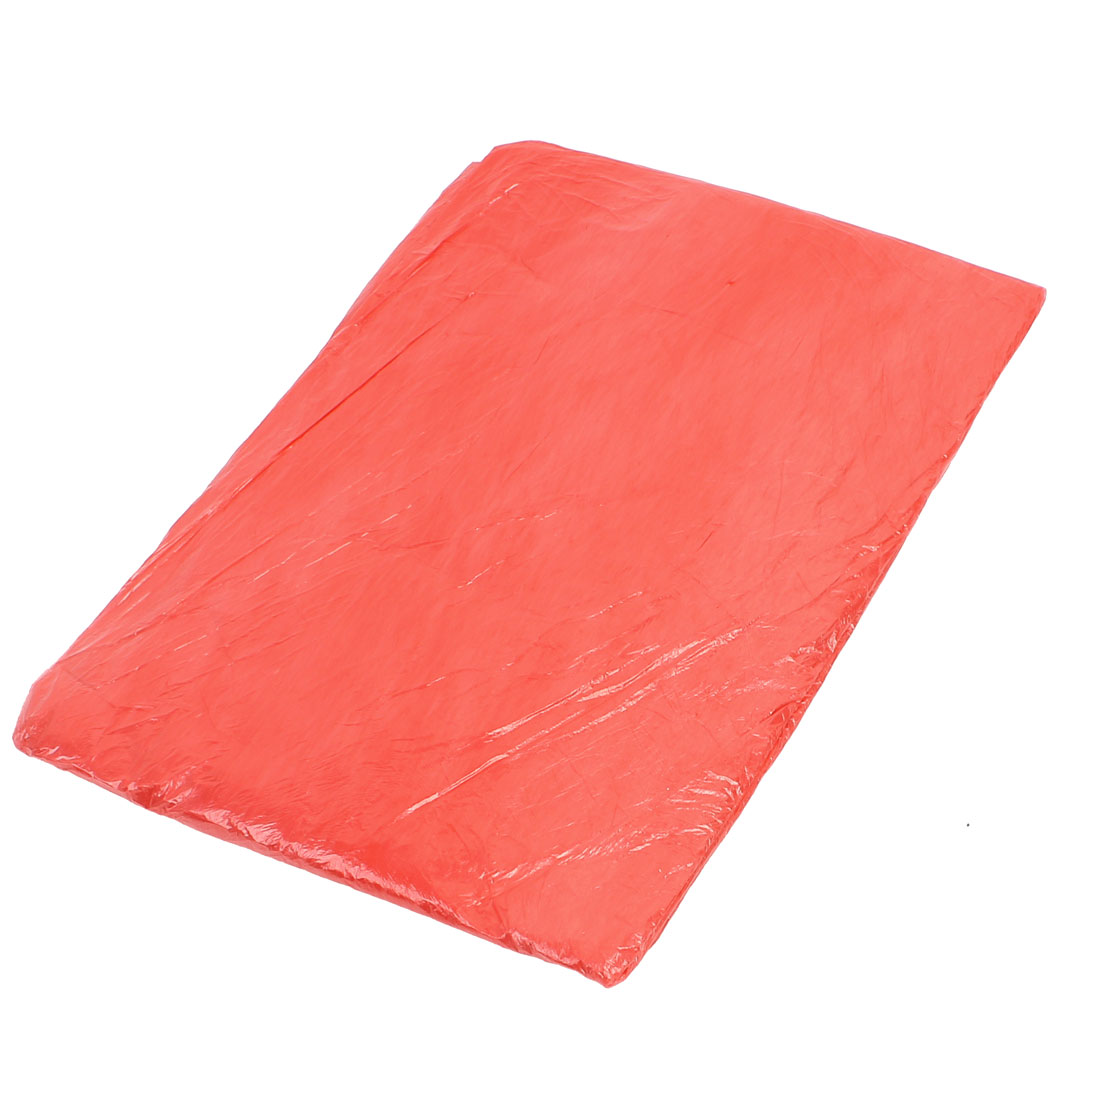 10 Pcs 2.2M x 2.2M Disposable Film Table Cloth Cover Extend Decor Red